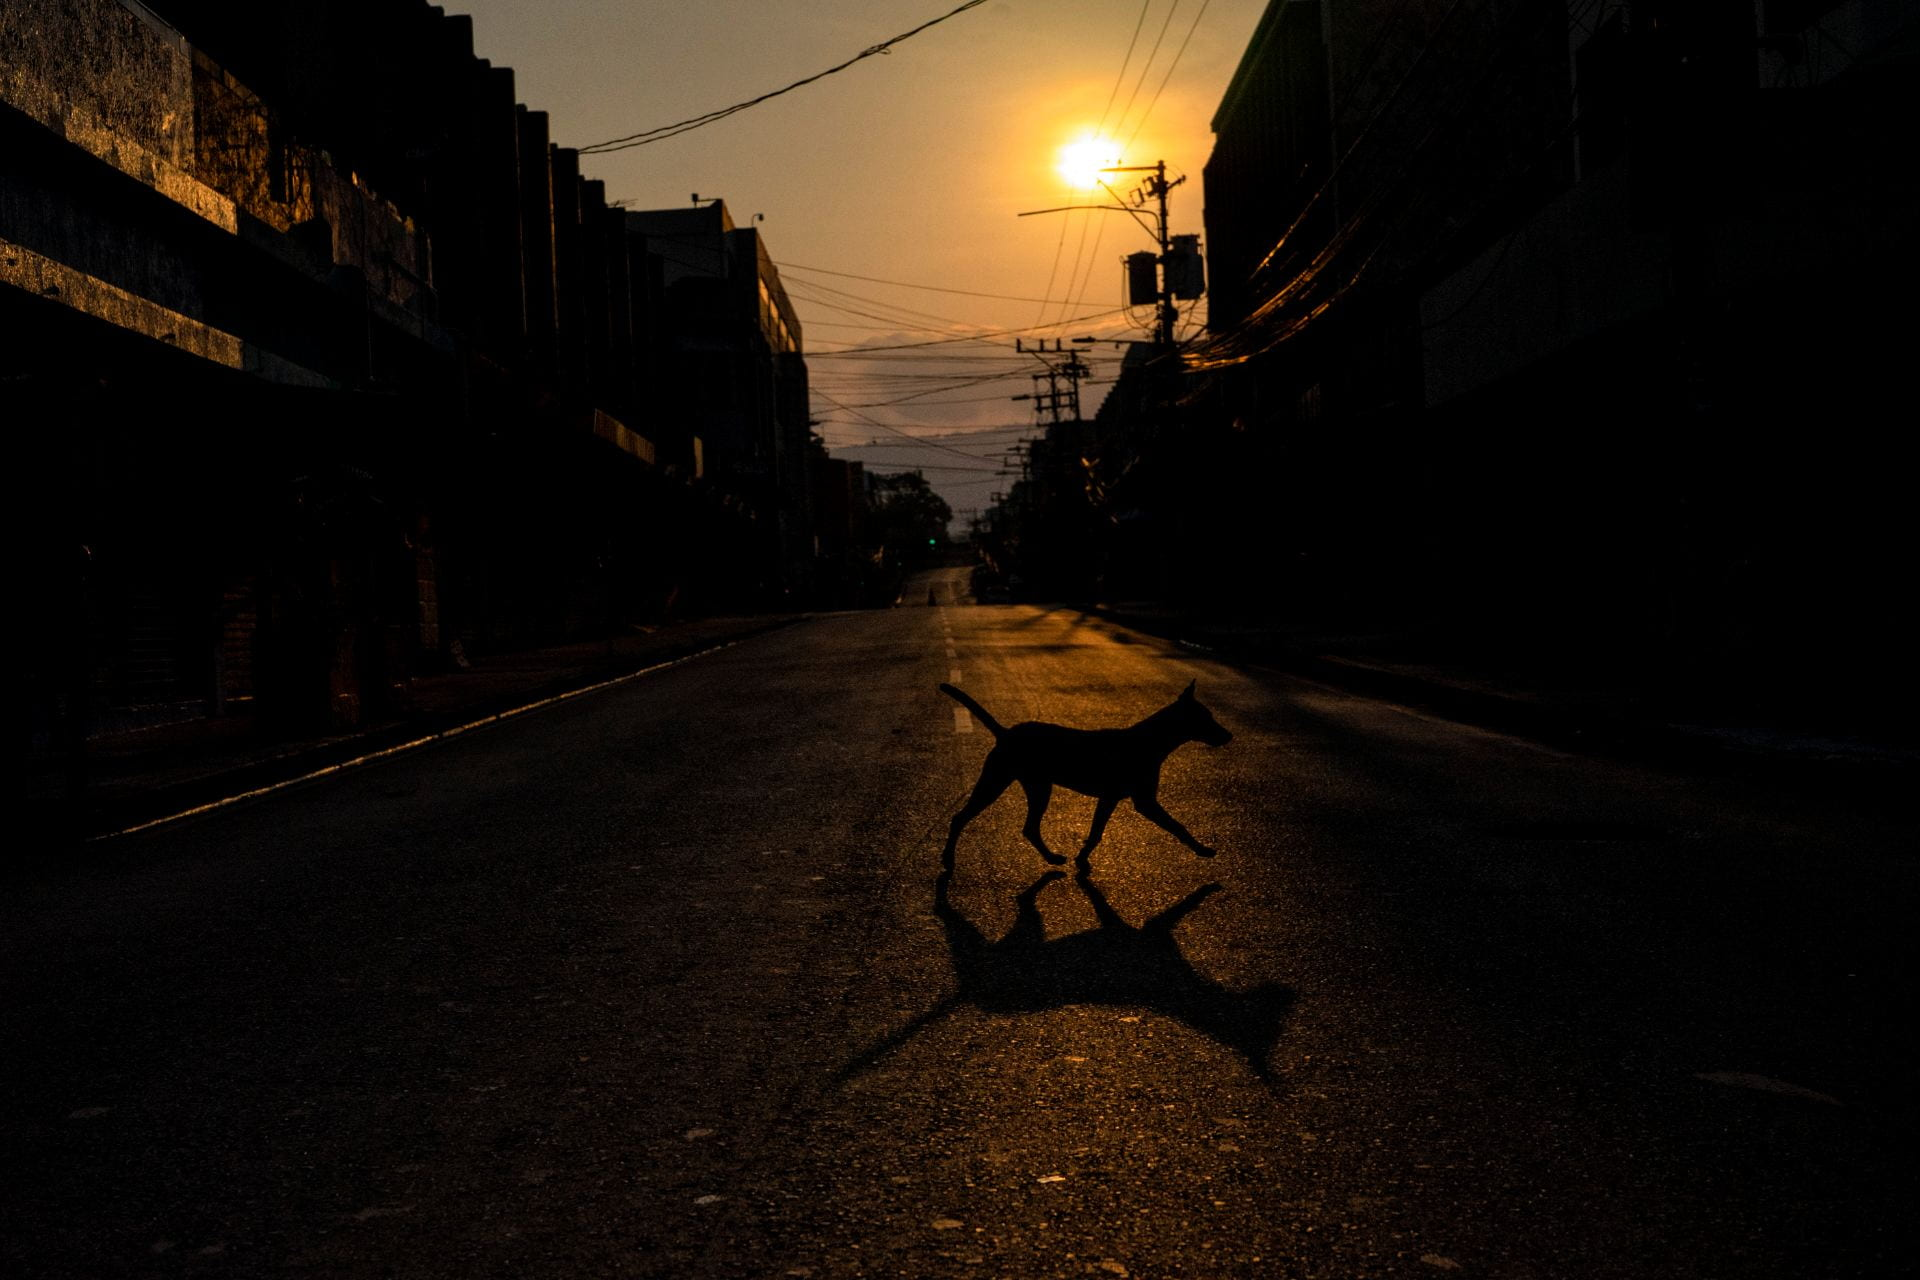 dog in empty street